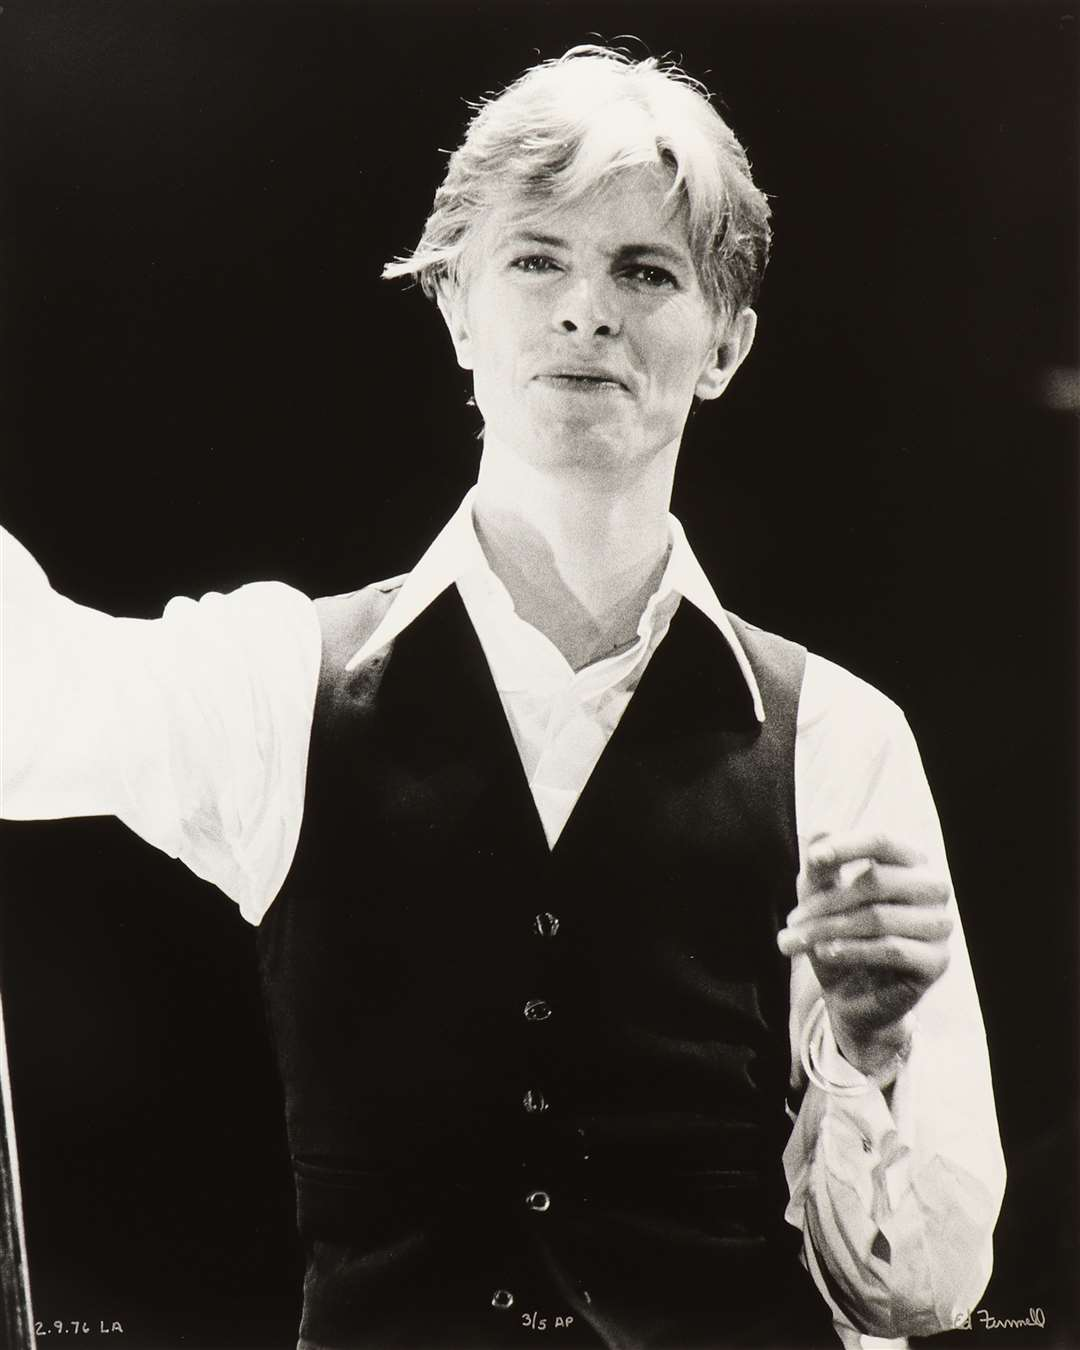 David Bowie - The Thin White Duke, Station to Station tour, 1976, signed Ed Finnell, numbered 3/5, estimate £ 250- £ 350